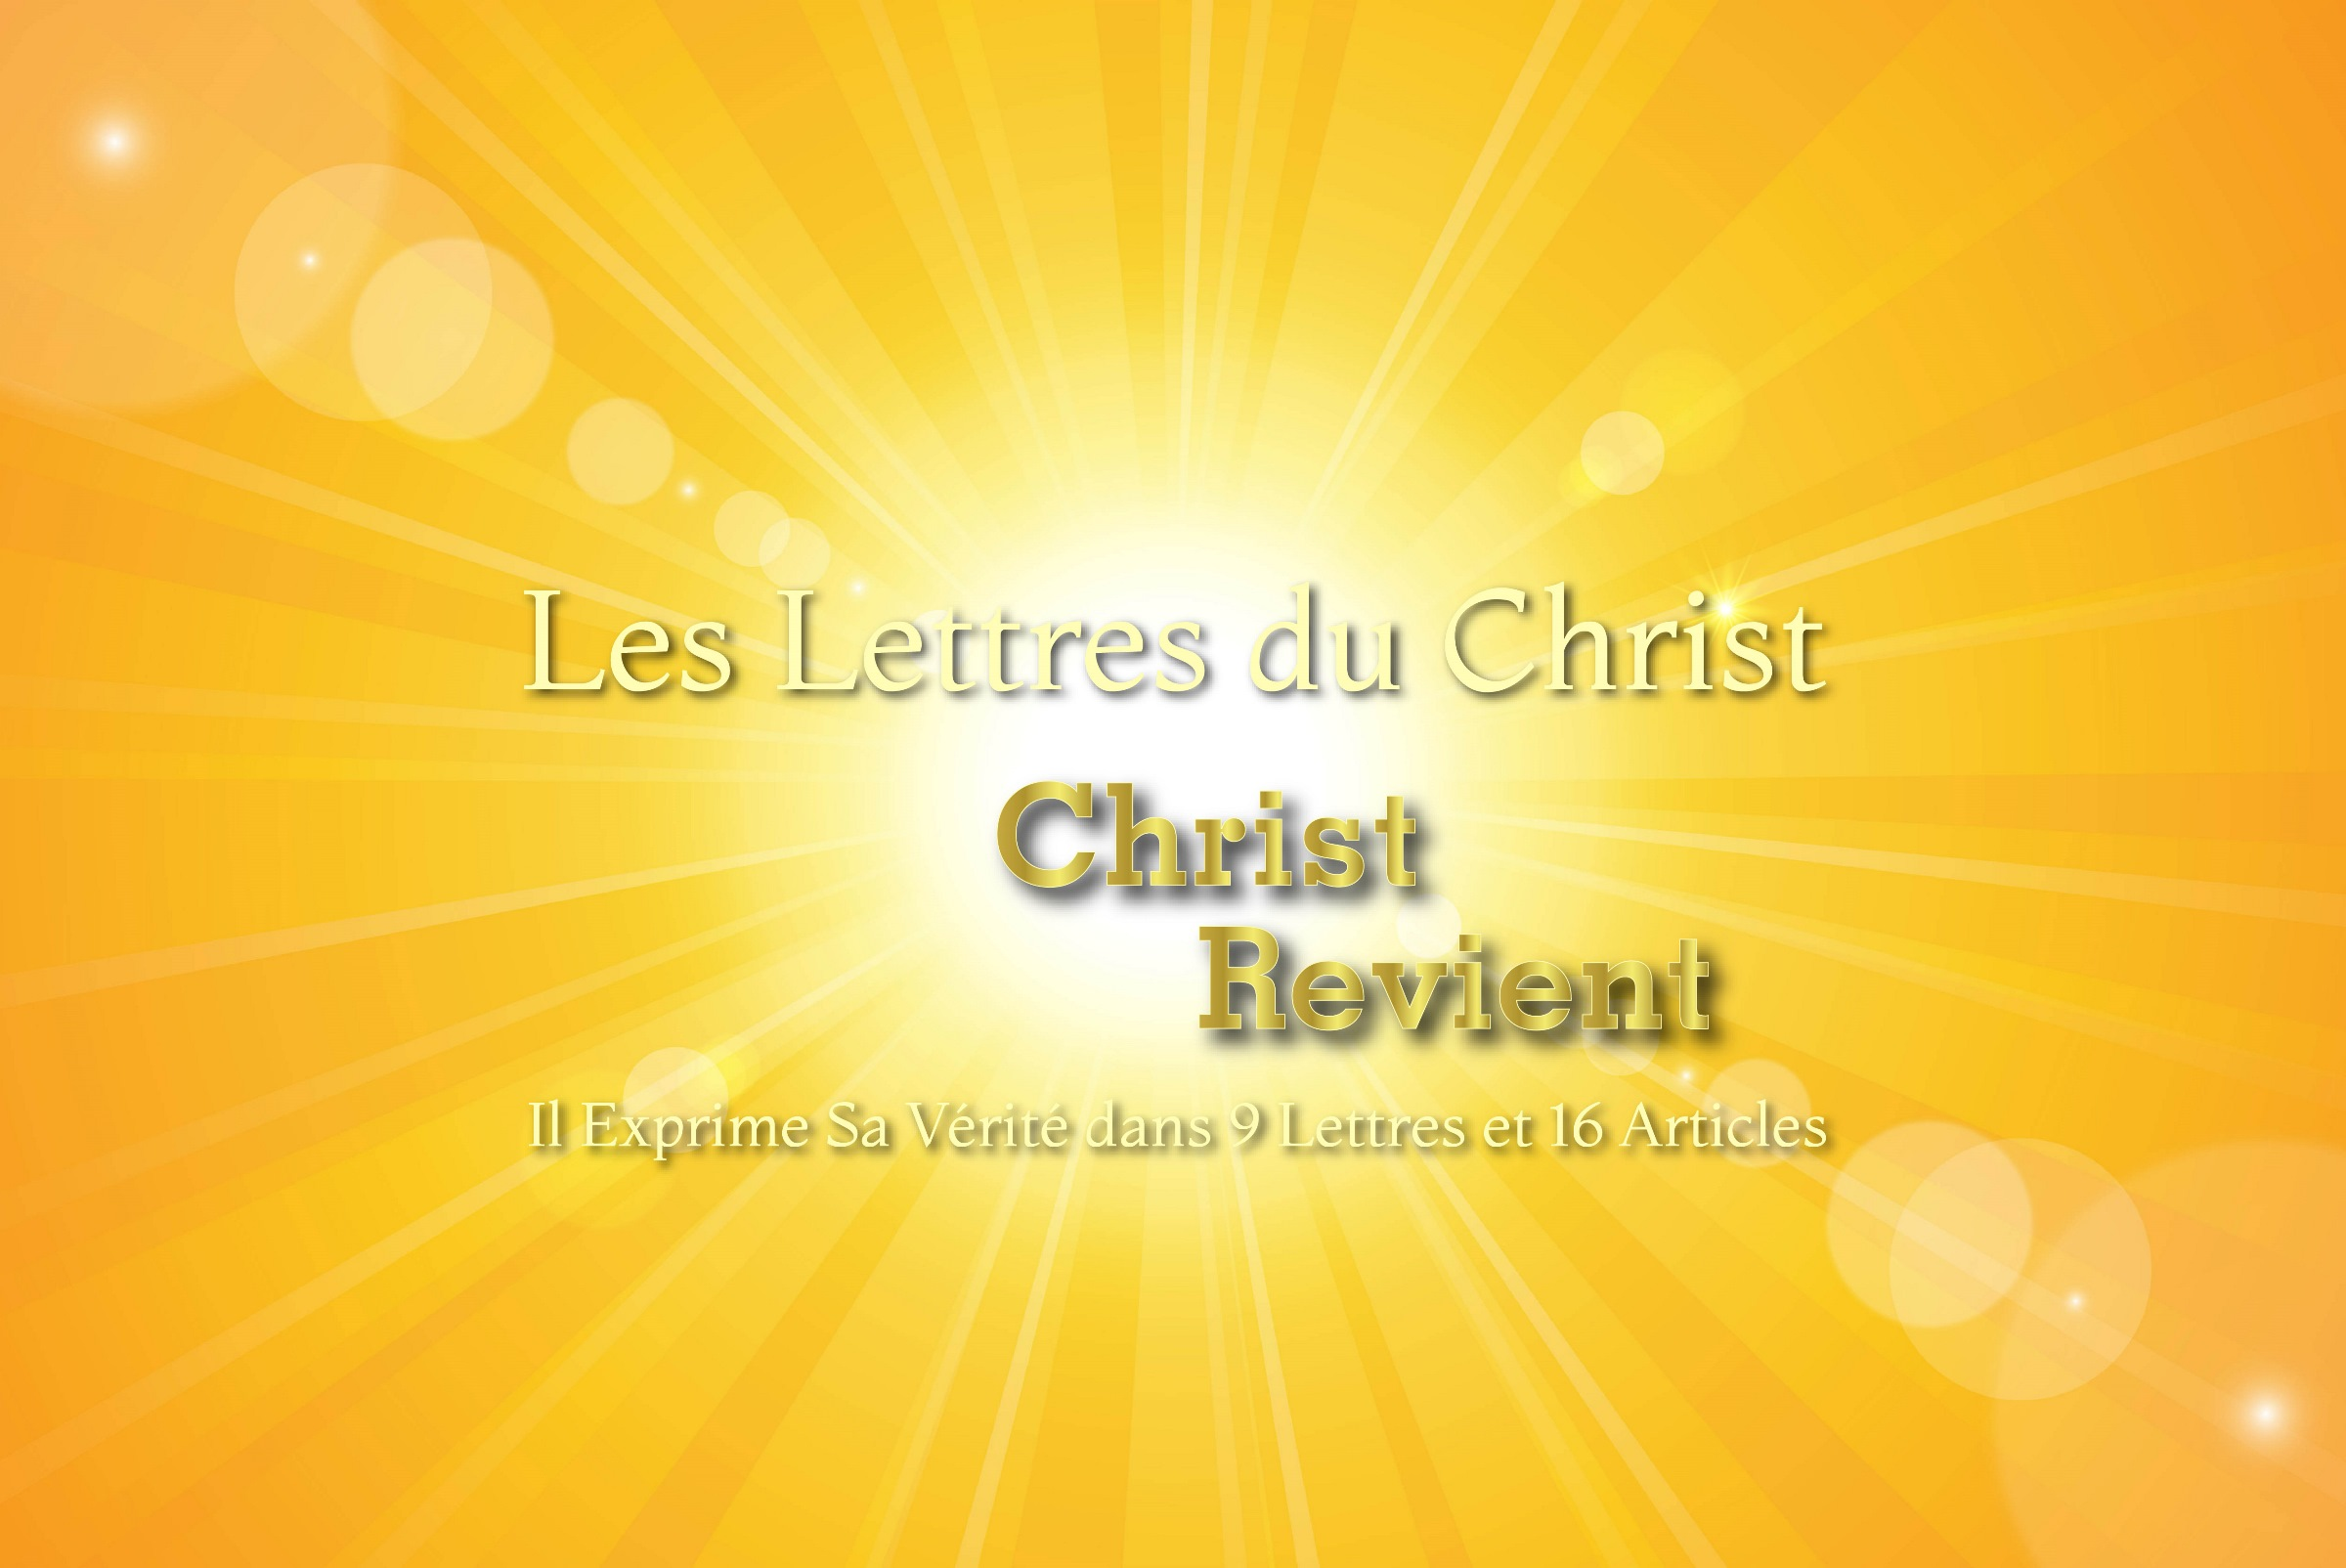 Le plus grand désir du Christ